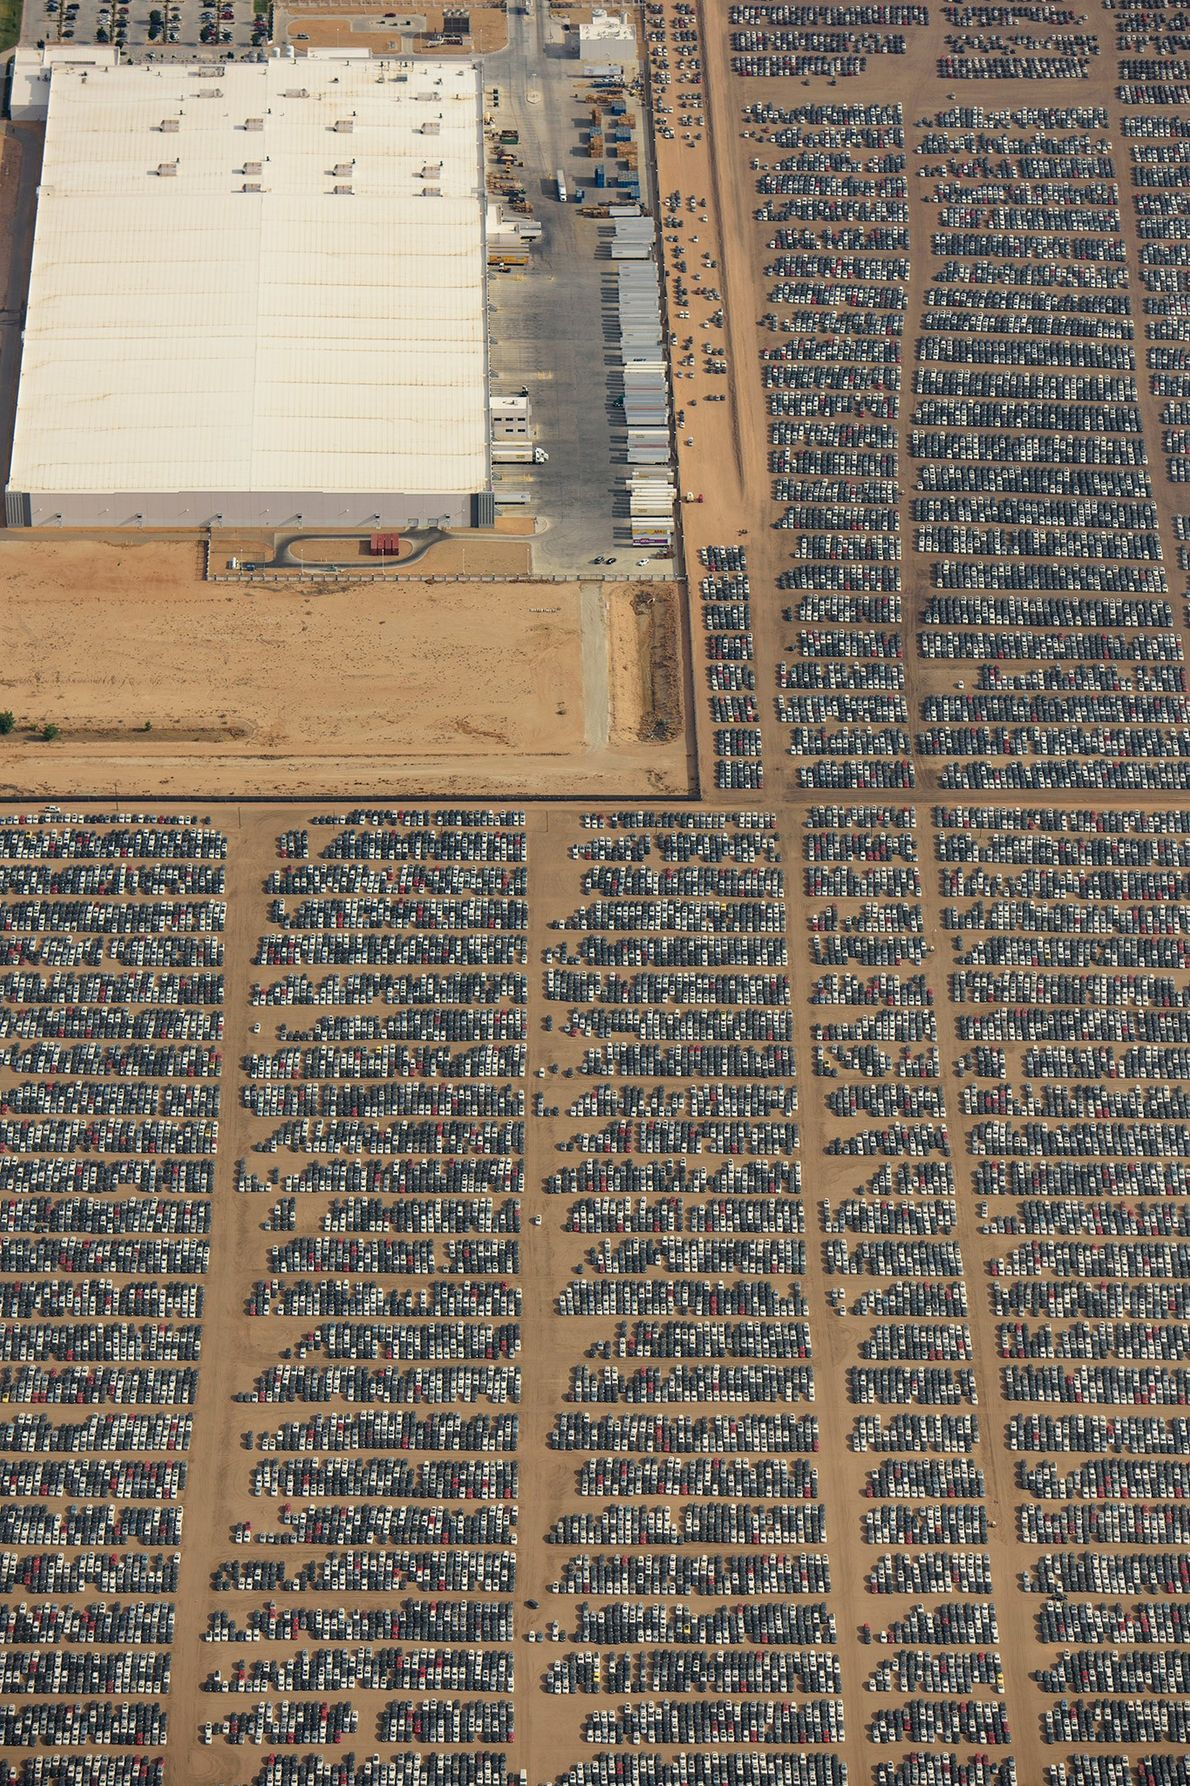 The Southern California Logistics Airport is one of 37 sites that stores Volkswagen cars turned in ...